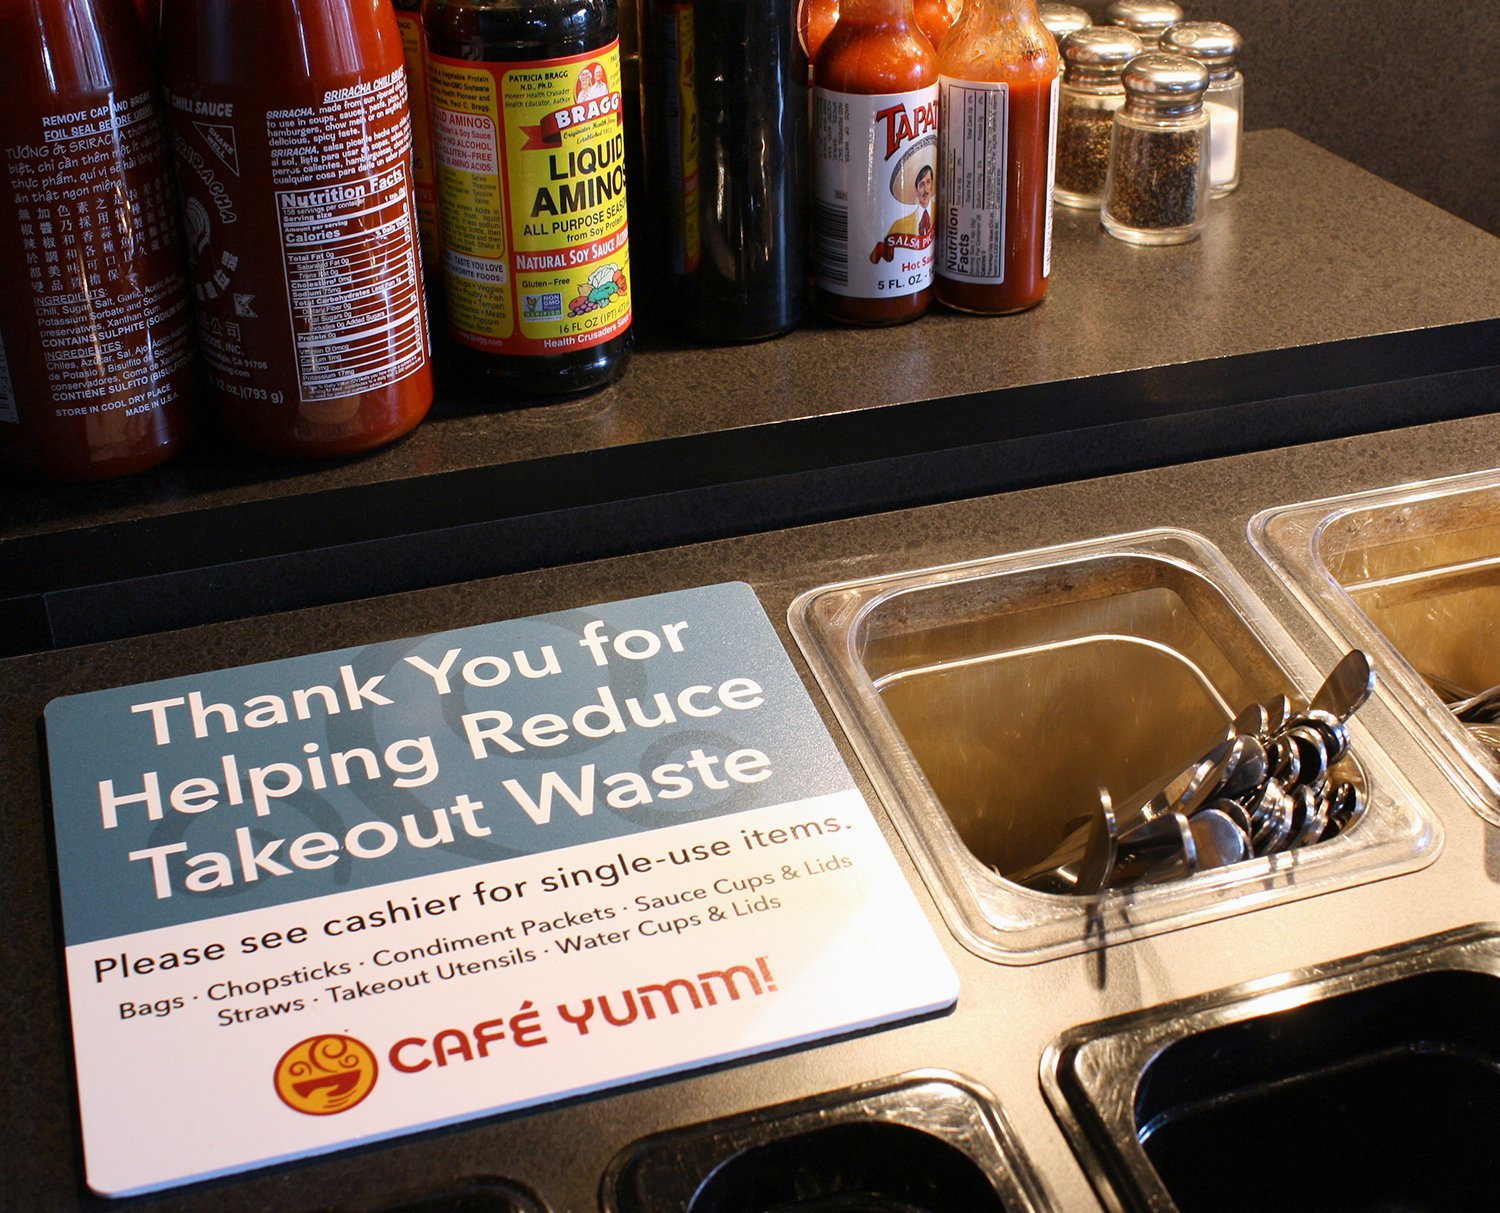 Thank You for Helping Us Reduce Waste